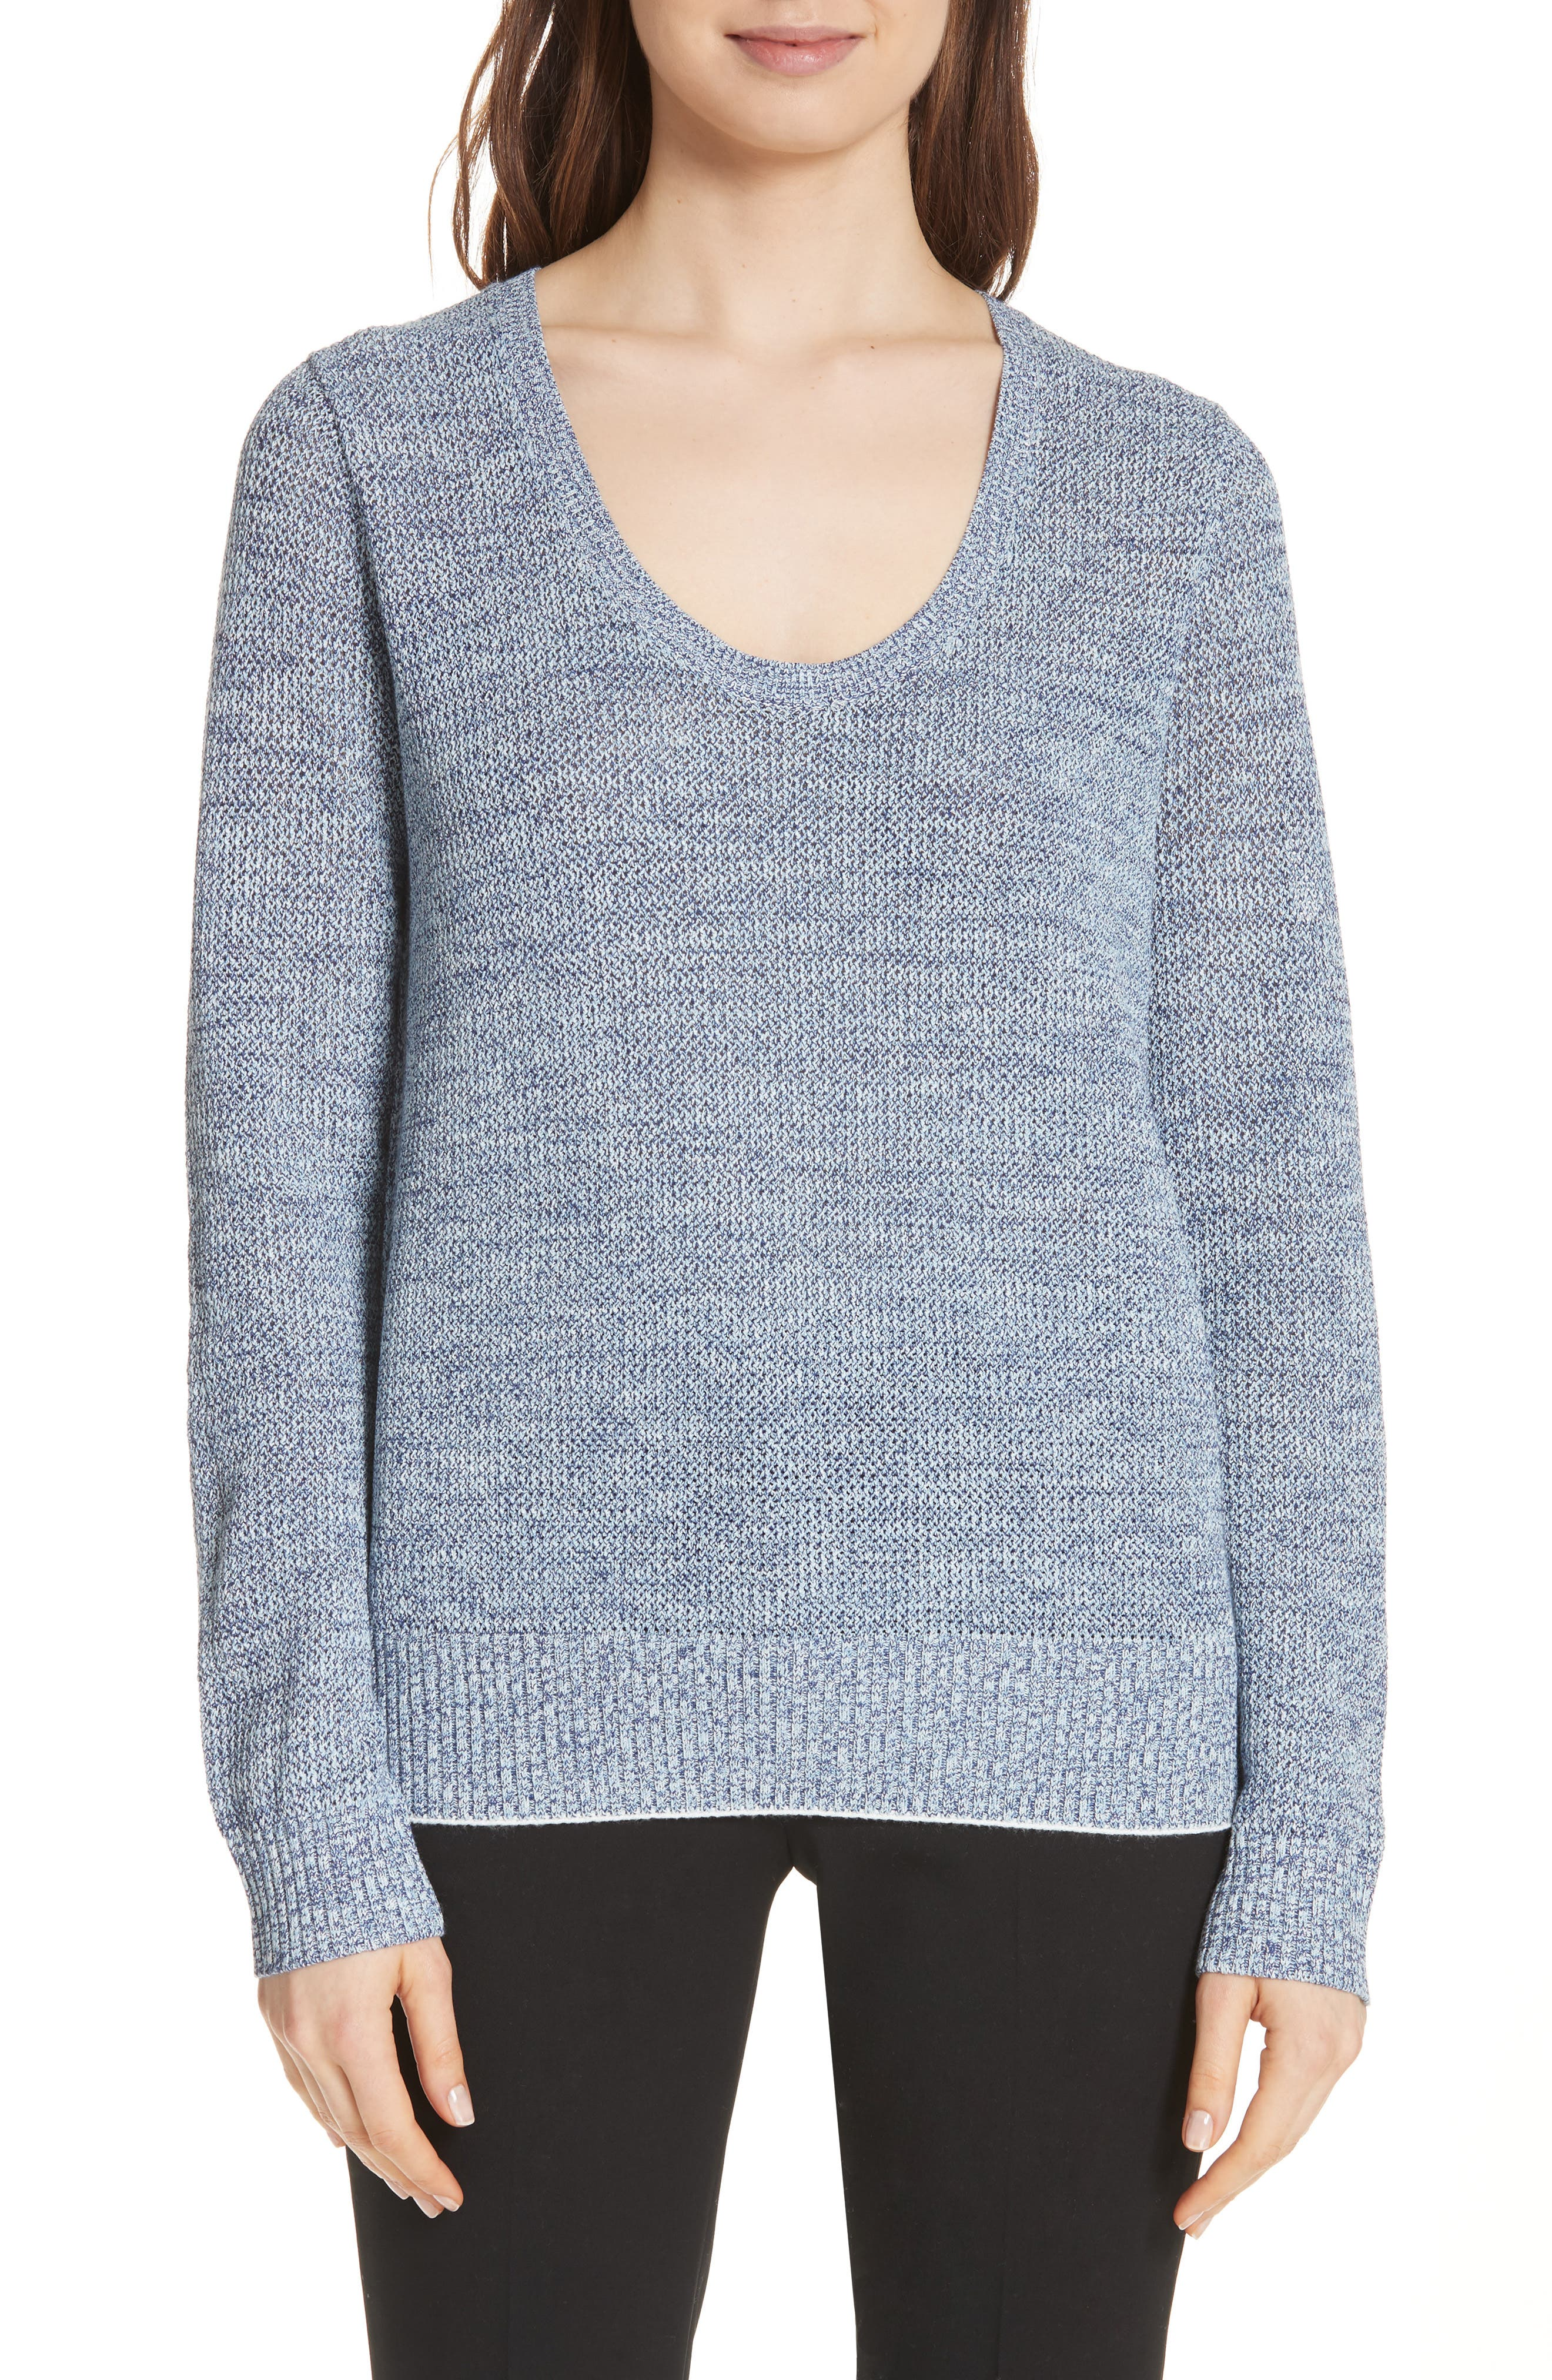 Main Image - Theory Prosecco Marled Sweater